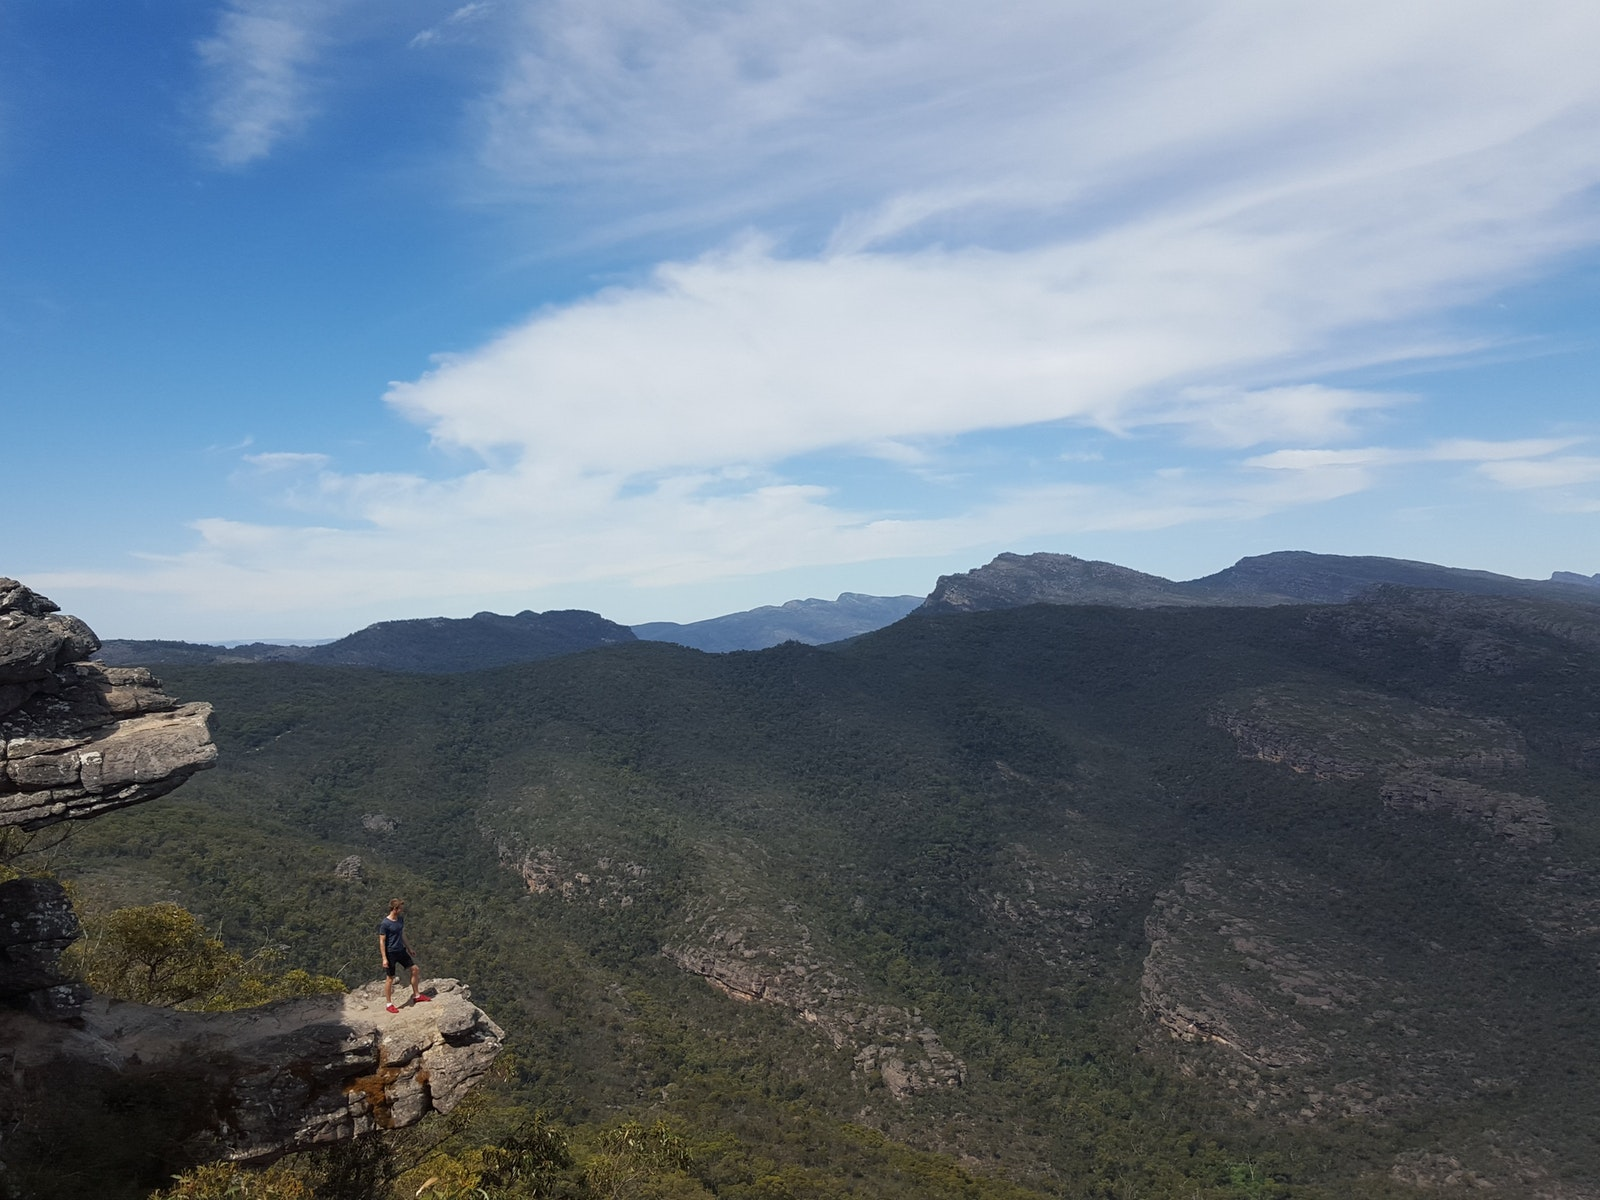 The Balconies - Grampians National Park